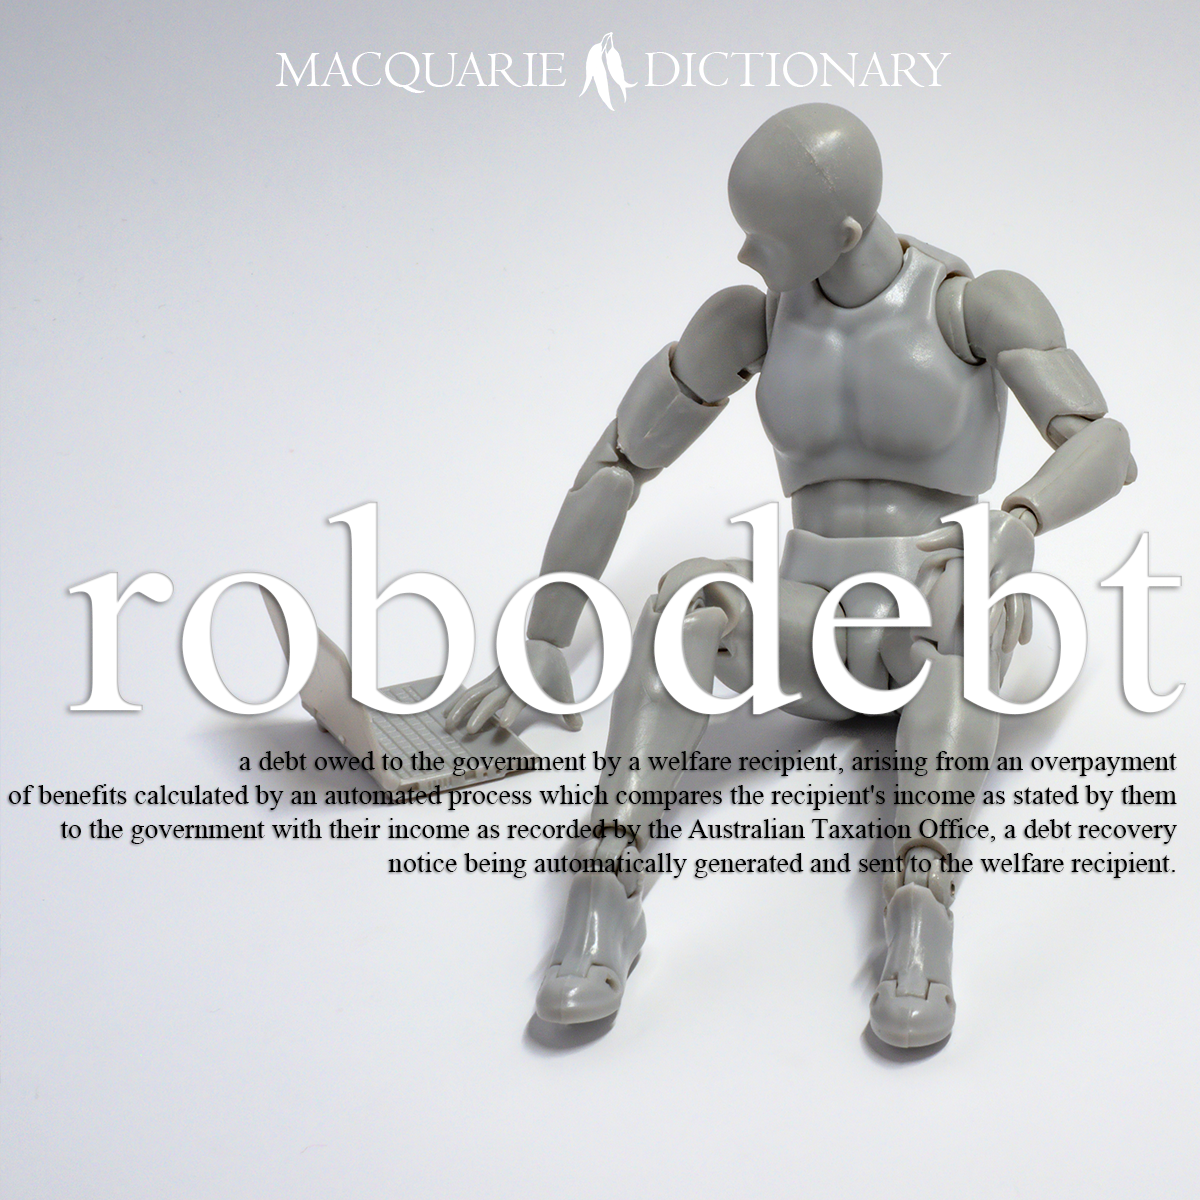 robodebt - a debt owed to the government by a present or past welfare recipient, arising from an overpayment of benefits calculated by an automated process which compares the recipient's income as stated by them to the government with their income as recorded by the taxation authority, a notice of discrepancy being automatically generated.